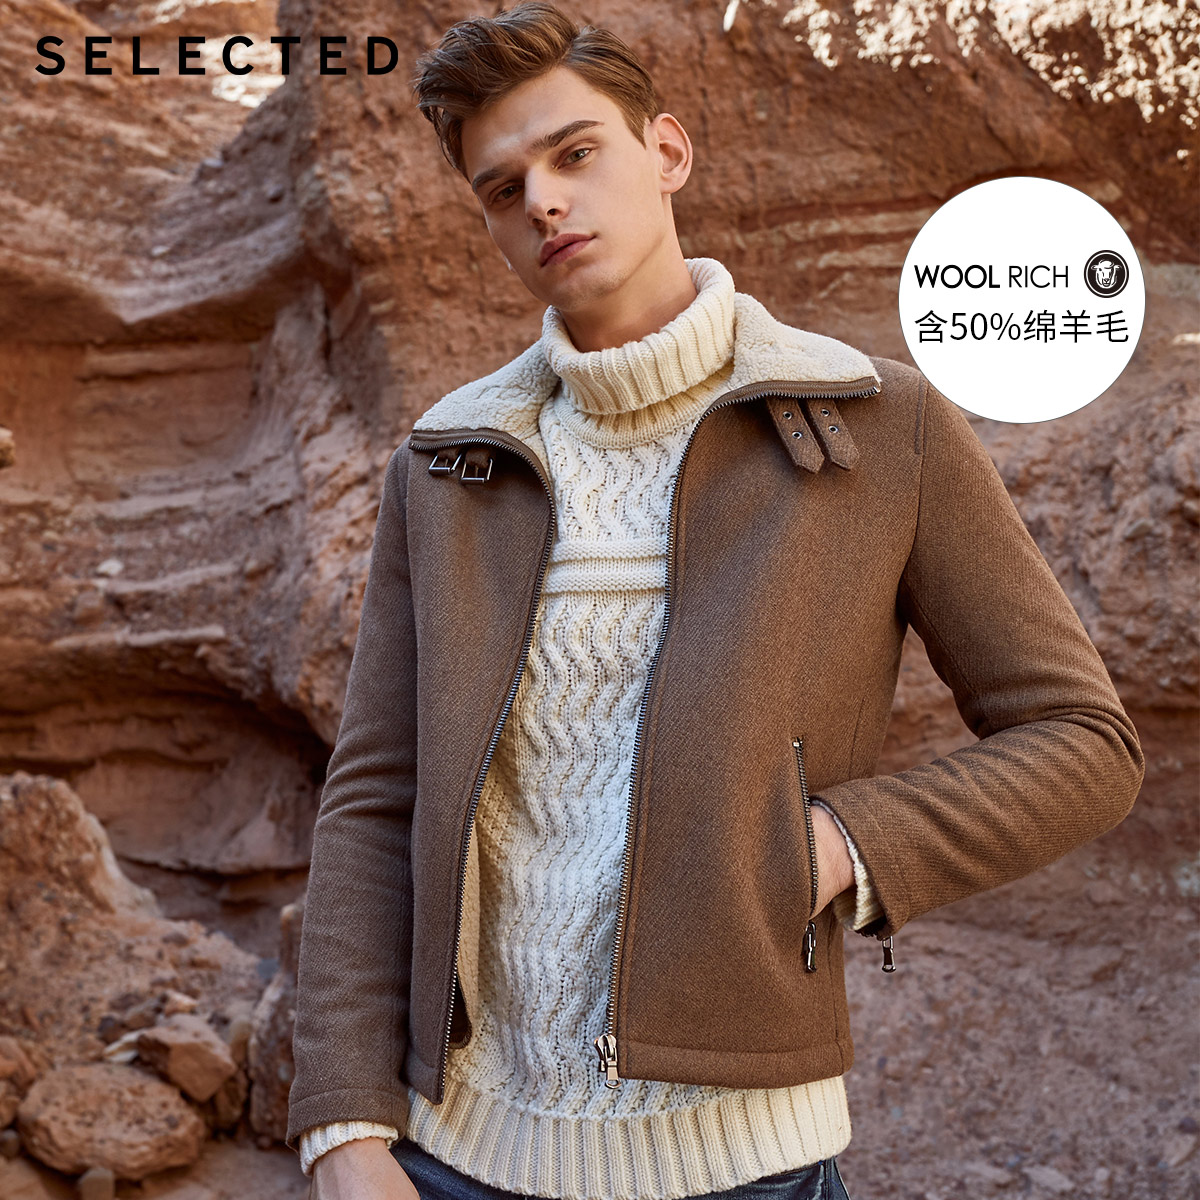 SELECTED Men's Stand-up Collar Wool Jacket Autumn & Winter Zipped Woolen Coat S|419427548